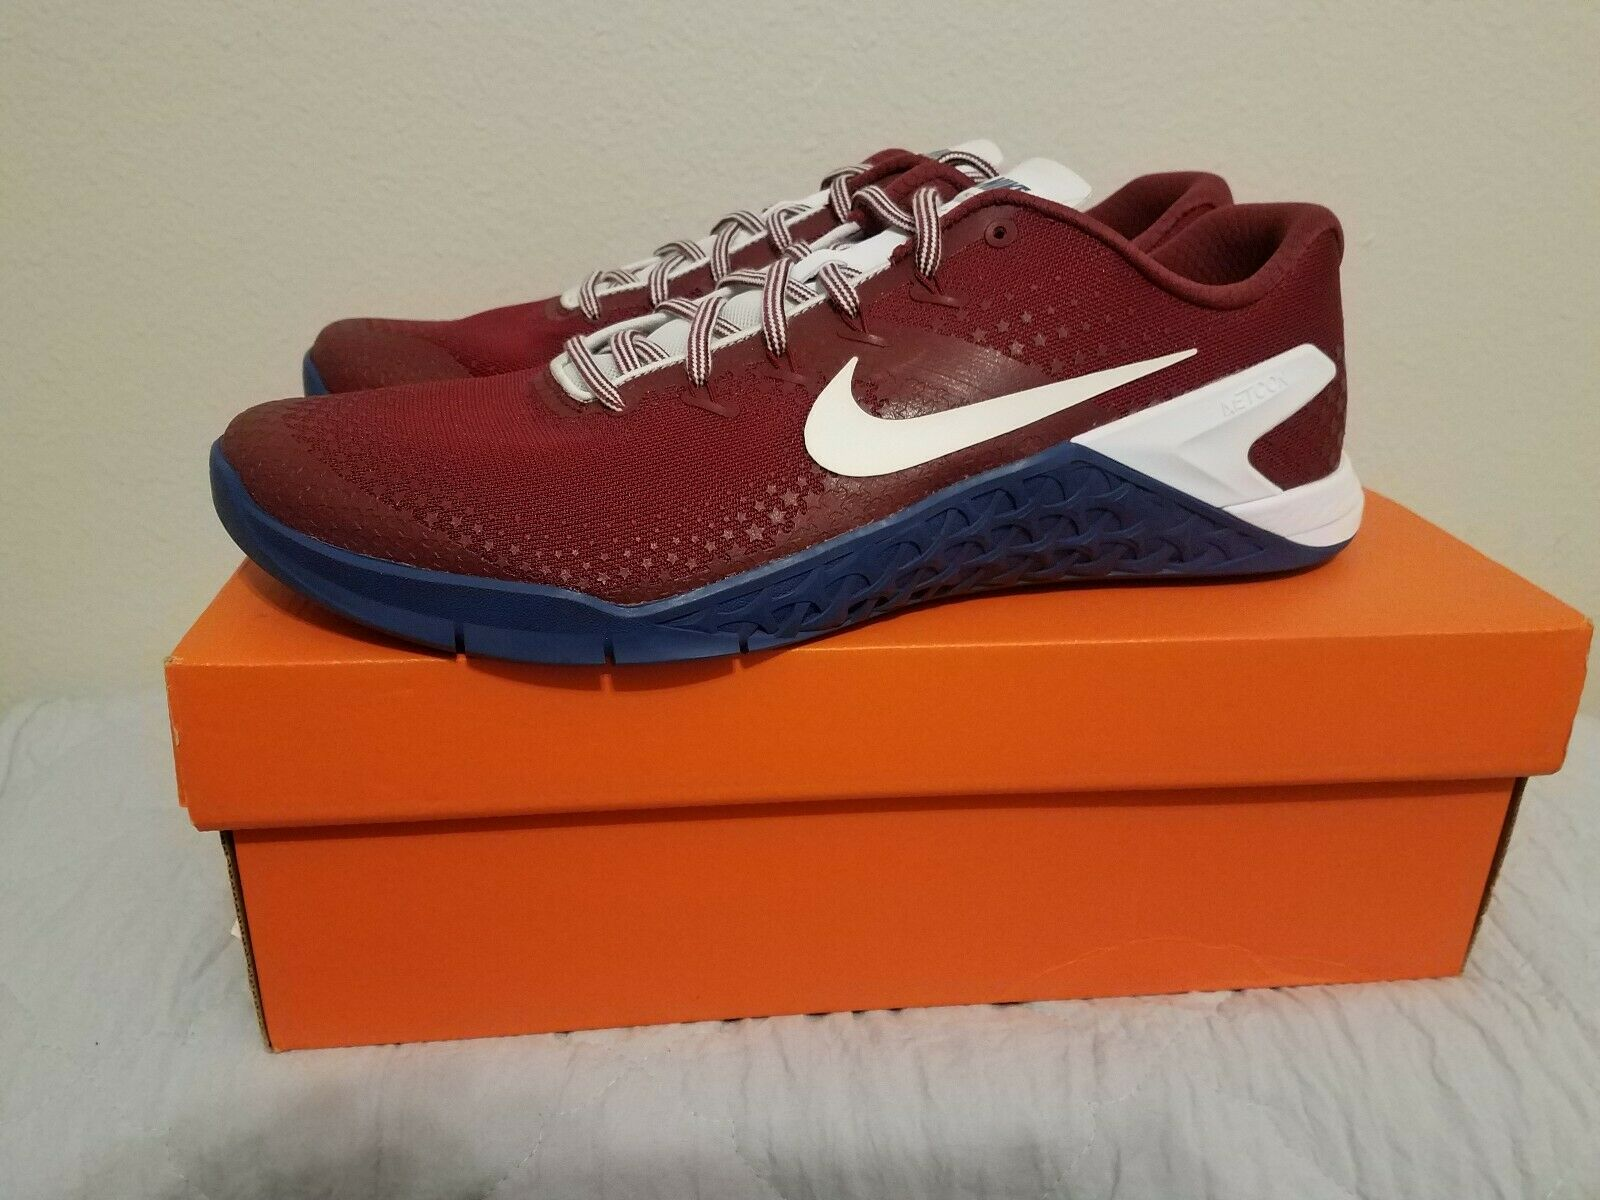 New NIKE Metcon 4 Americana Training shoes Mens maroon blueee size 13